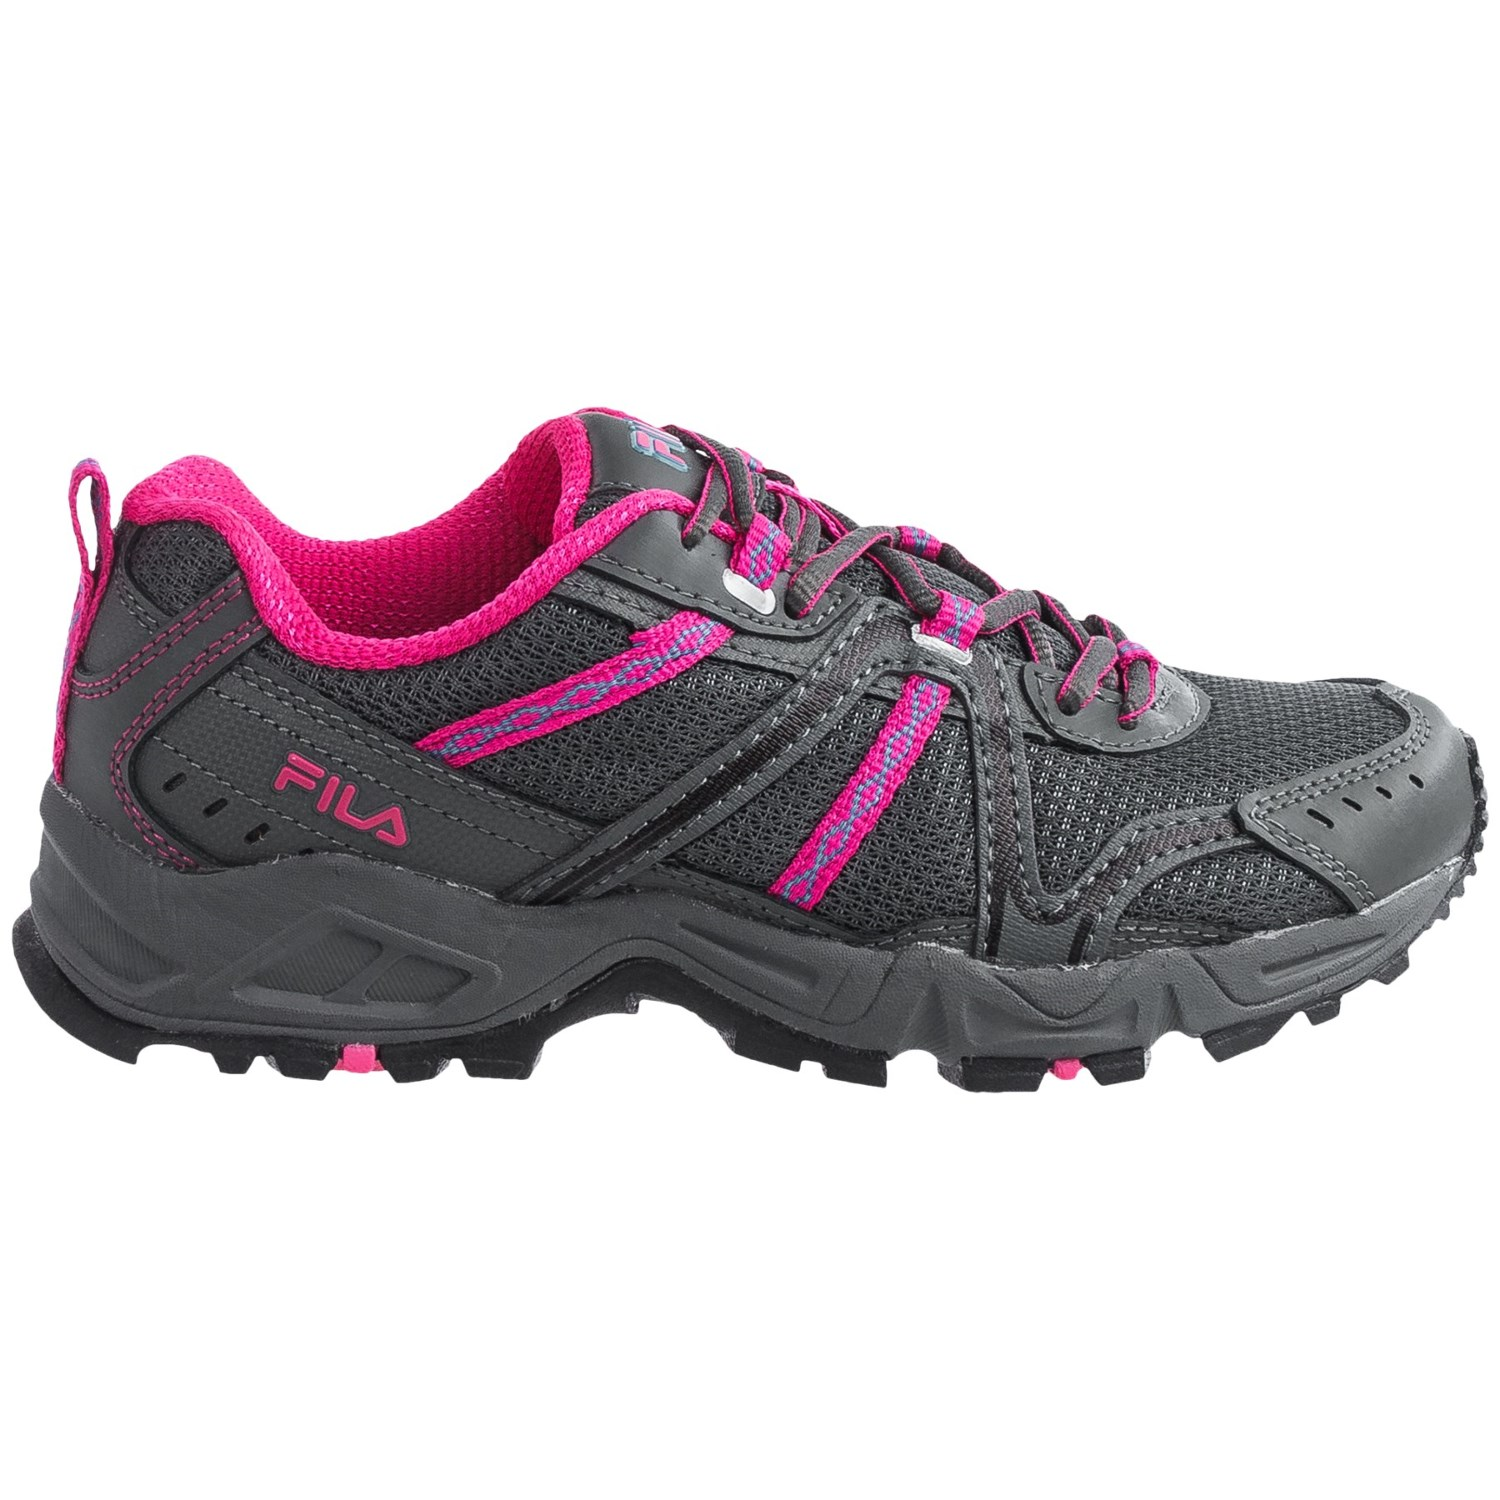 fila basketball shoes 2016. fila ascent 12 trail running shoes (for women) basketball 2016